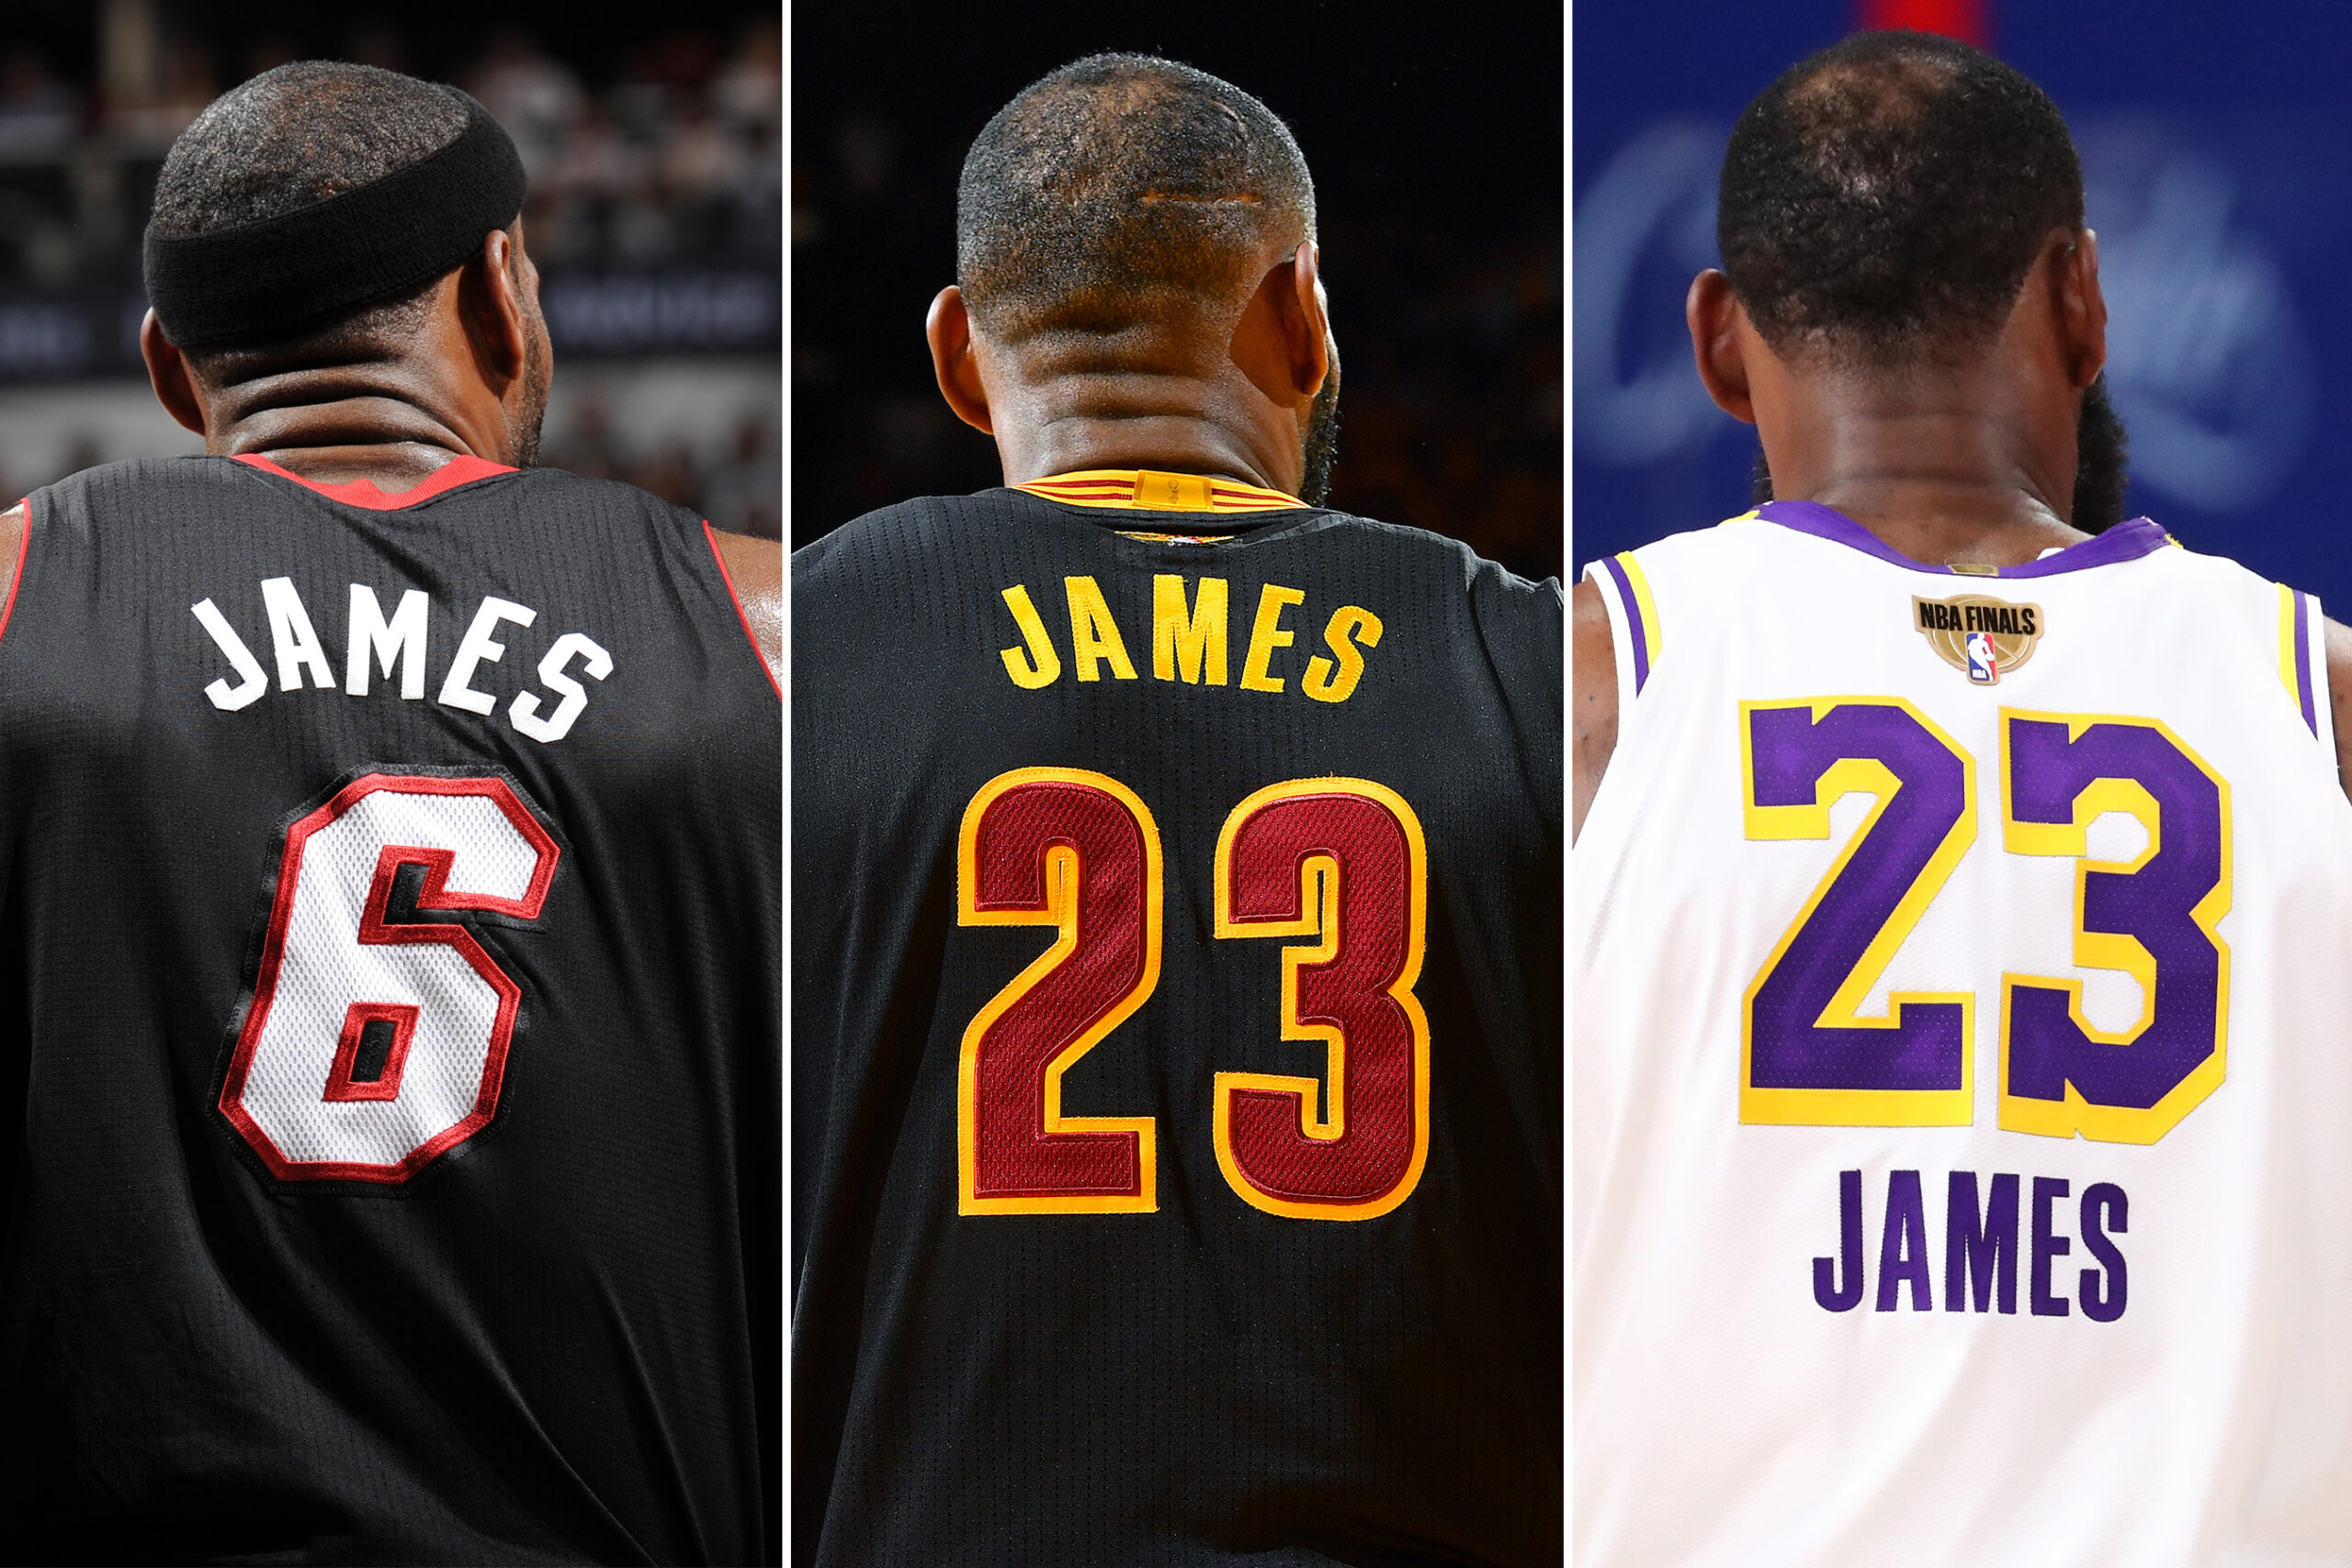 LeBron on course to join legends with jerseys retired by multiple teams